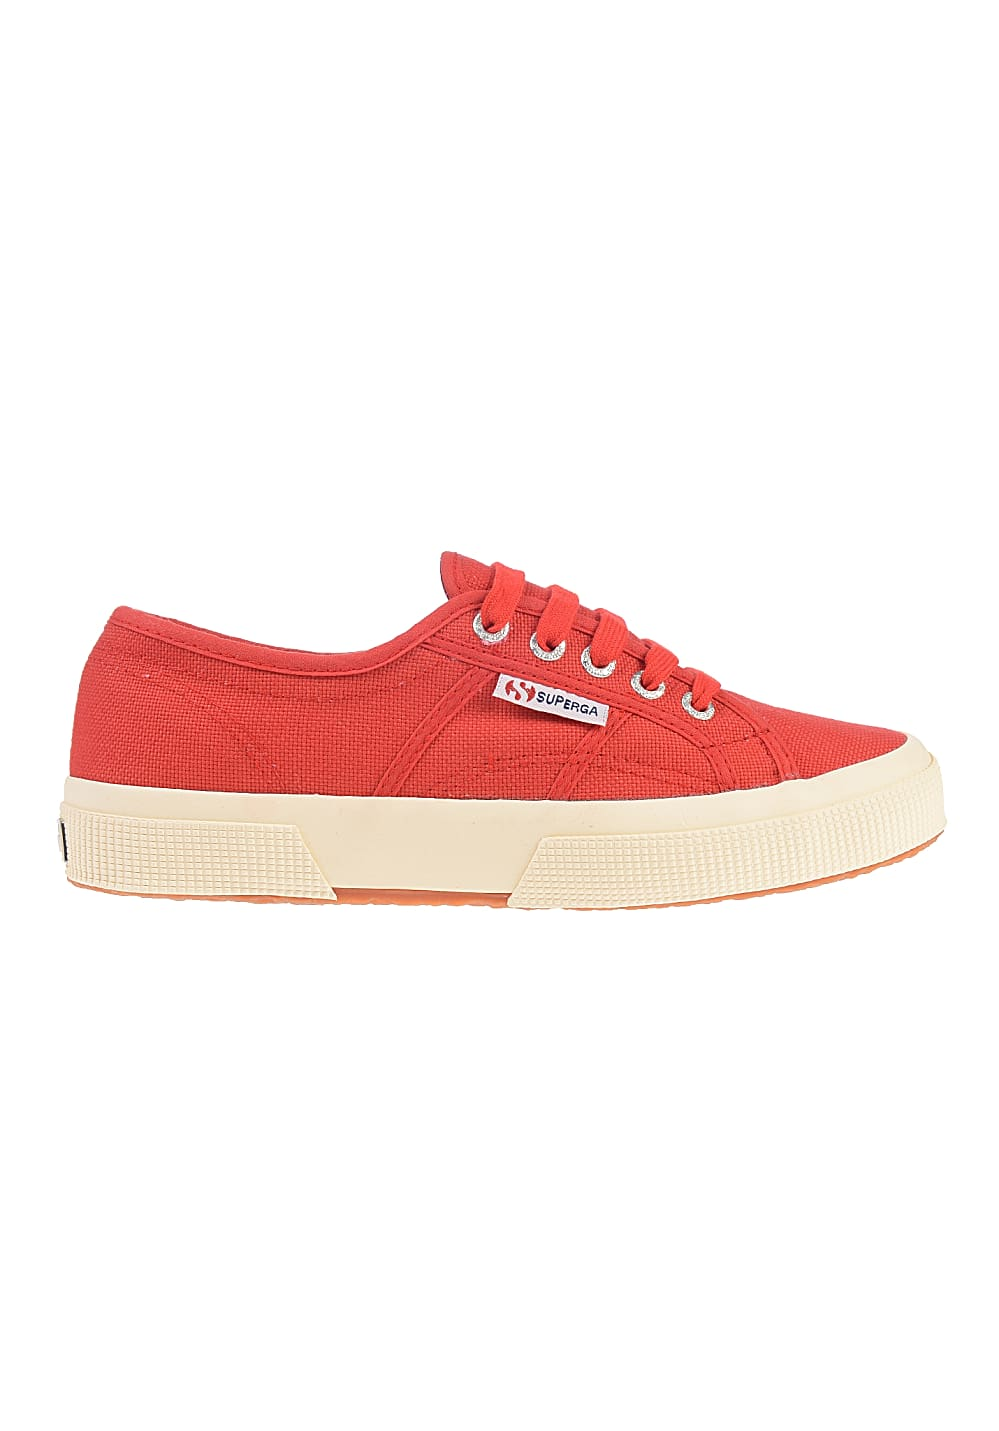 finest selection 16248 95c3c SUPERGA 2750-Cotu Classic - Sneaker - Rot